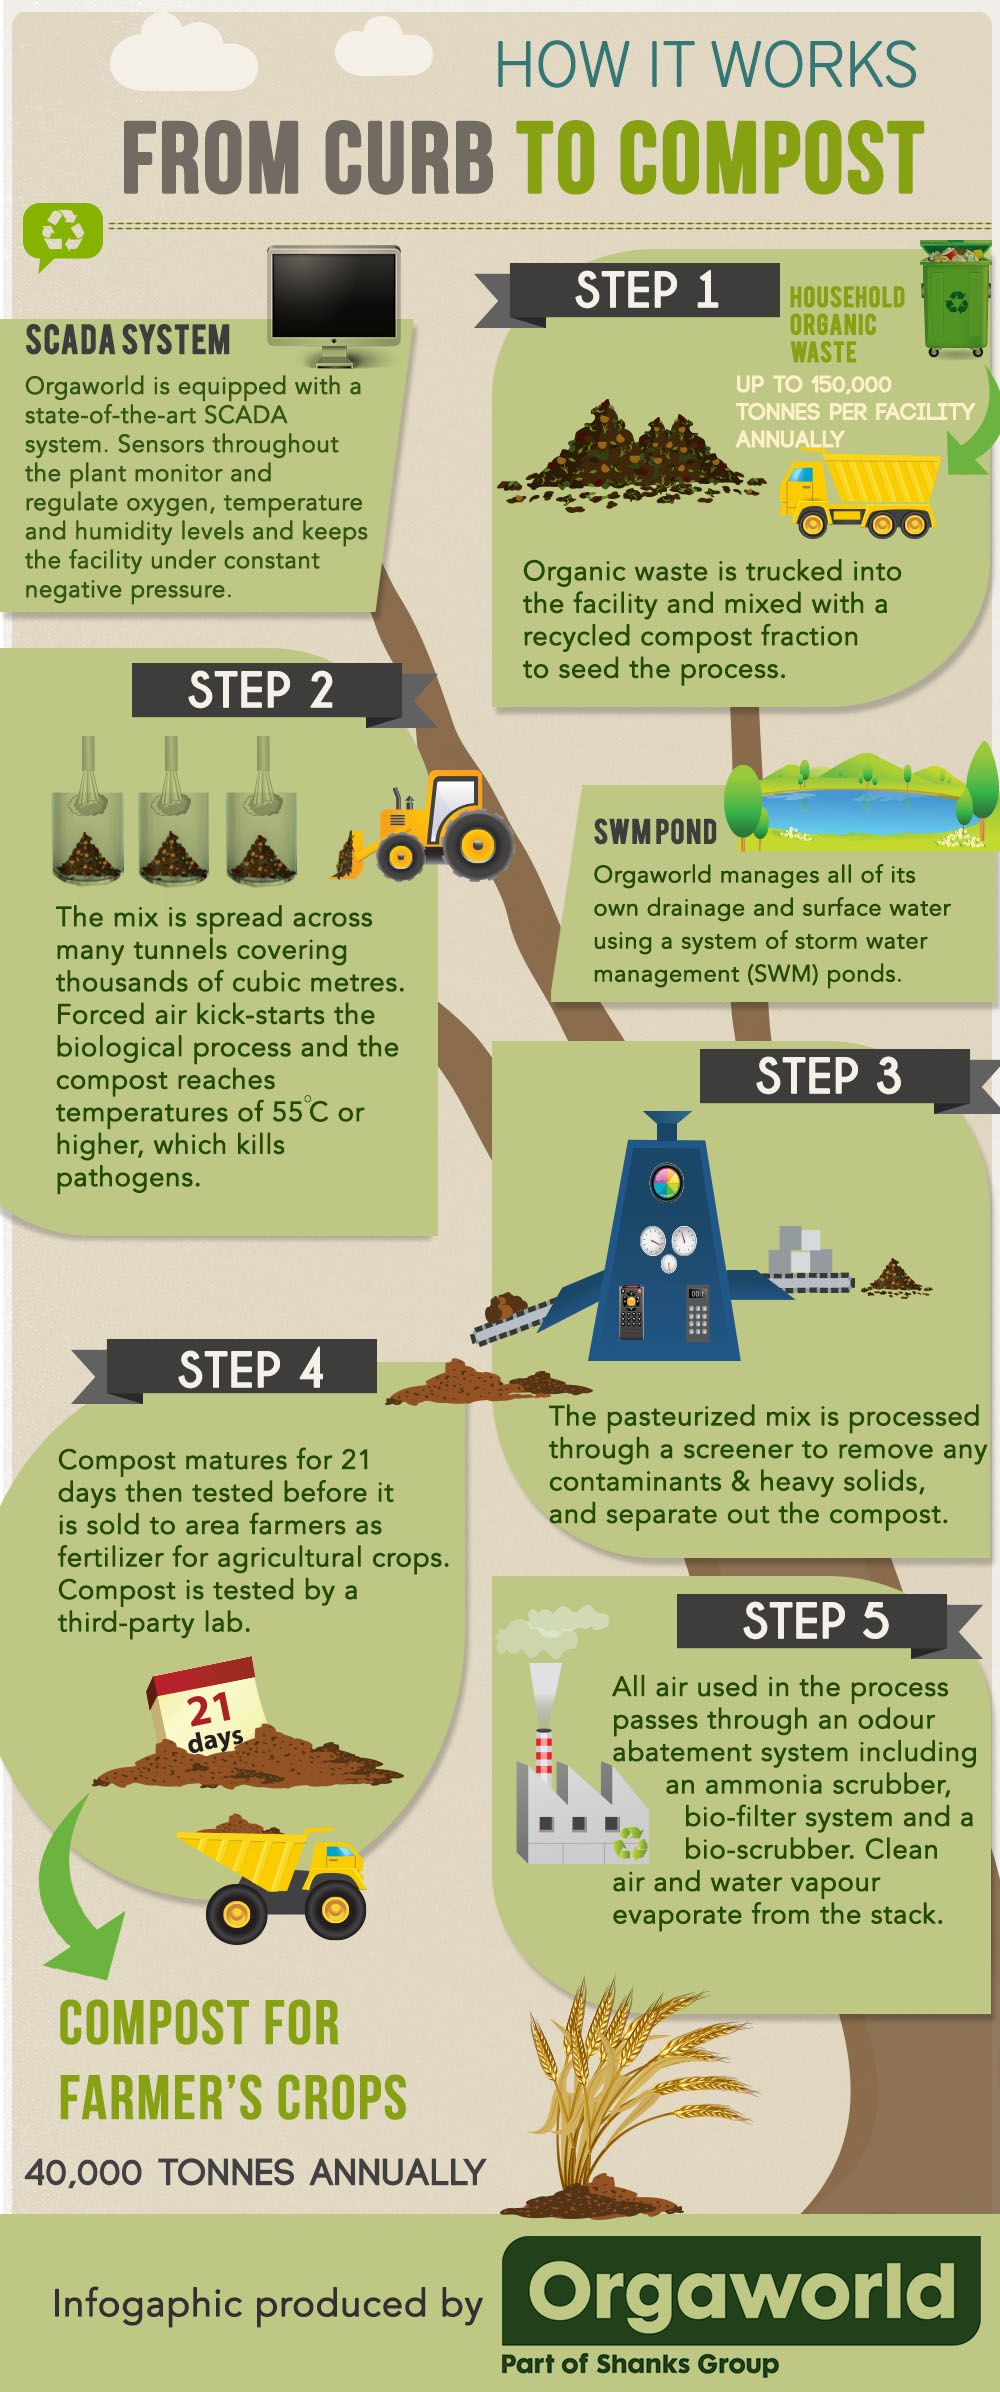 Check out our infographic on how composting works from